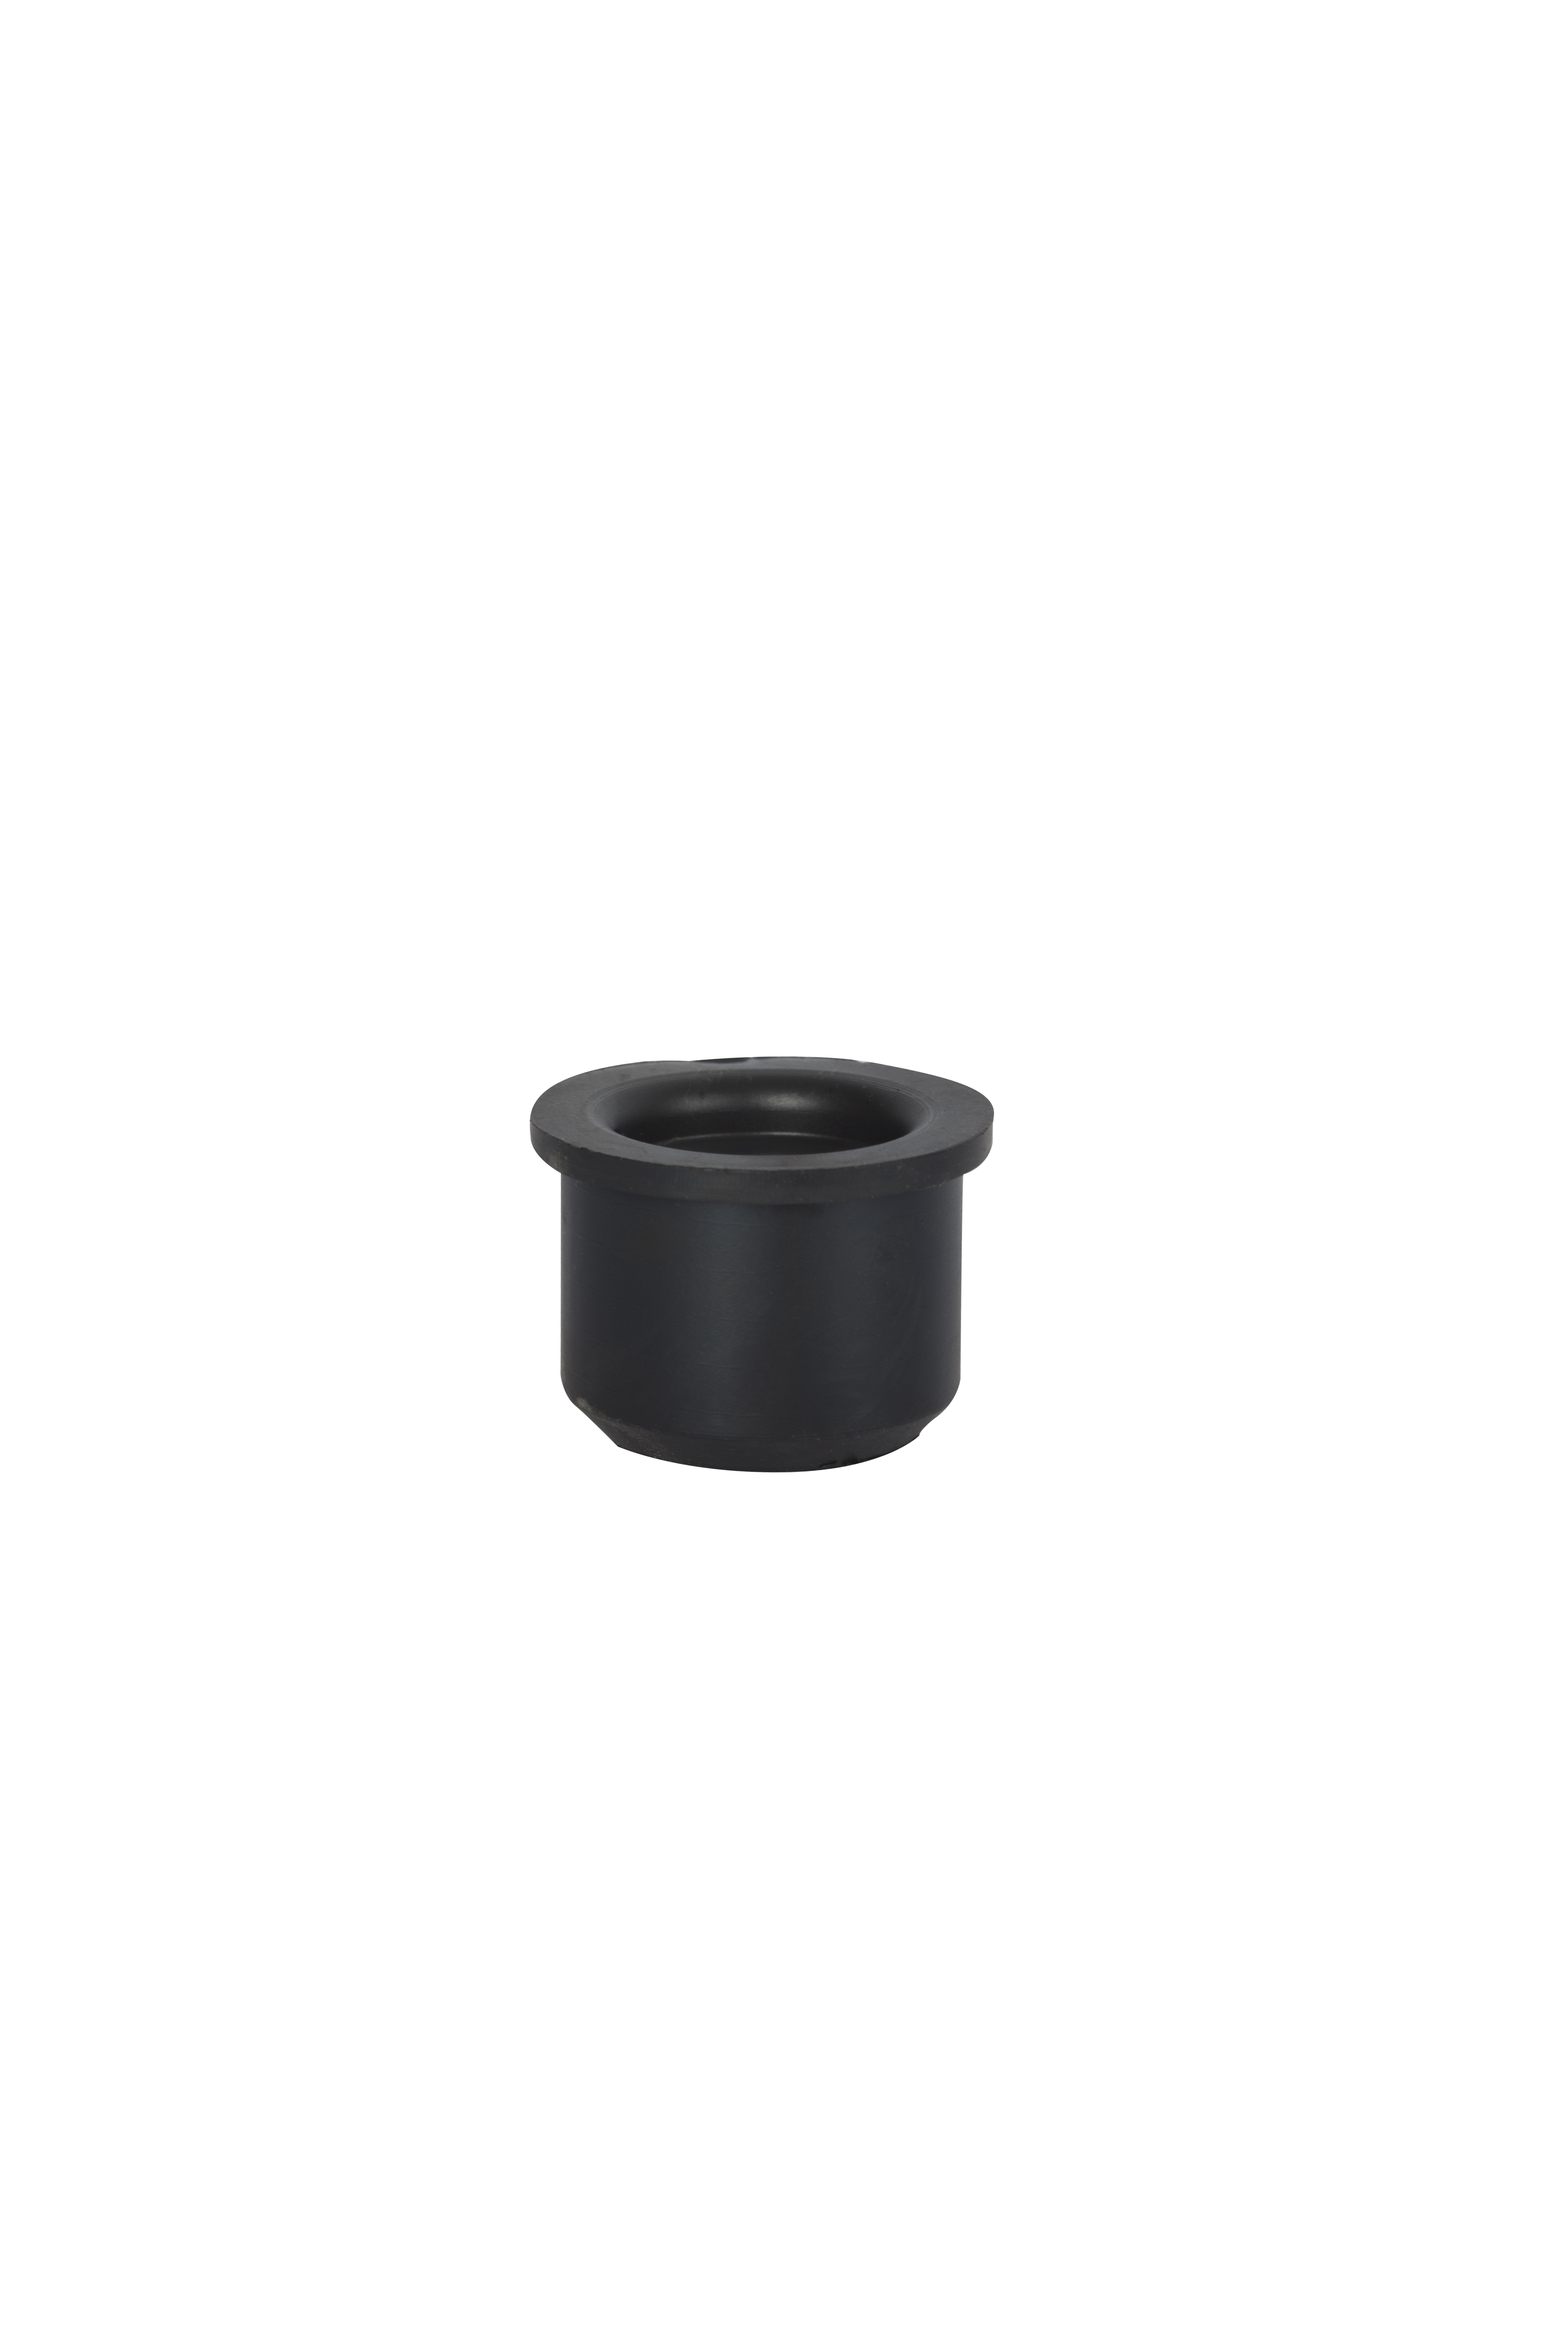 32x21.5mm Waste to Overflow Pushfit Rubber Adaptor